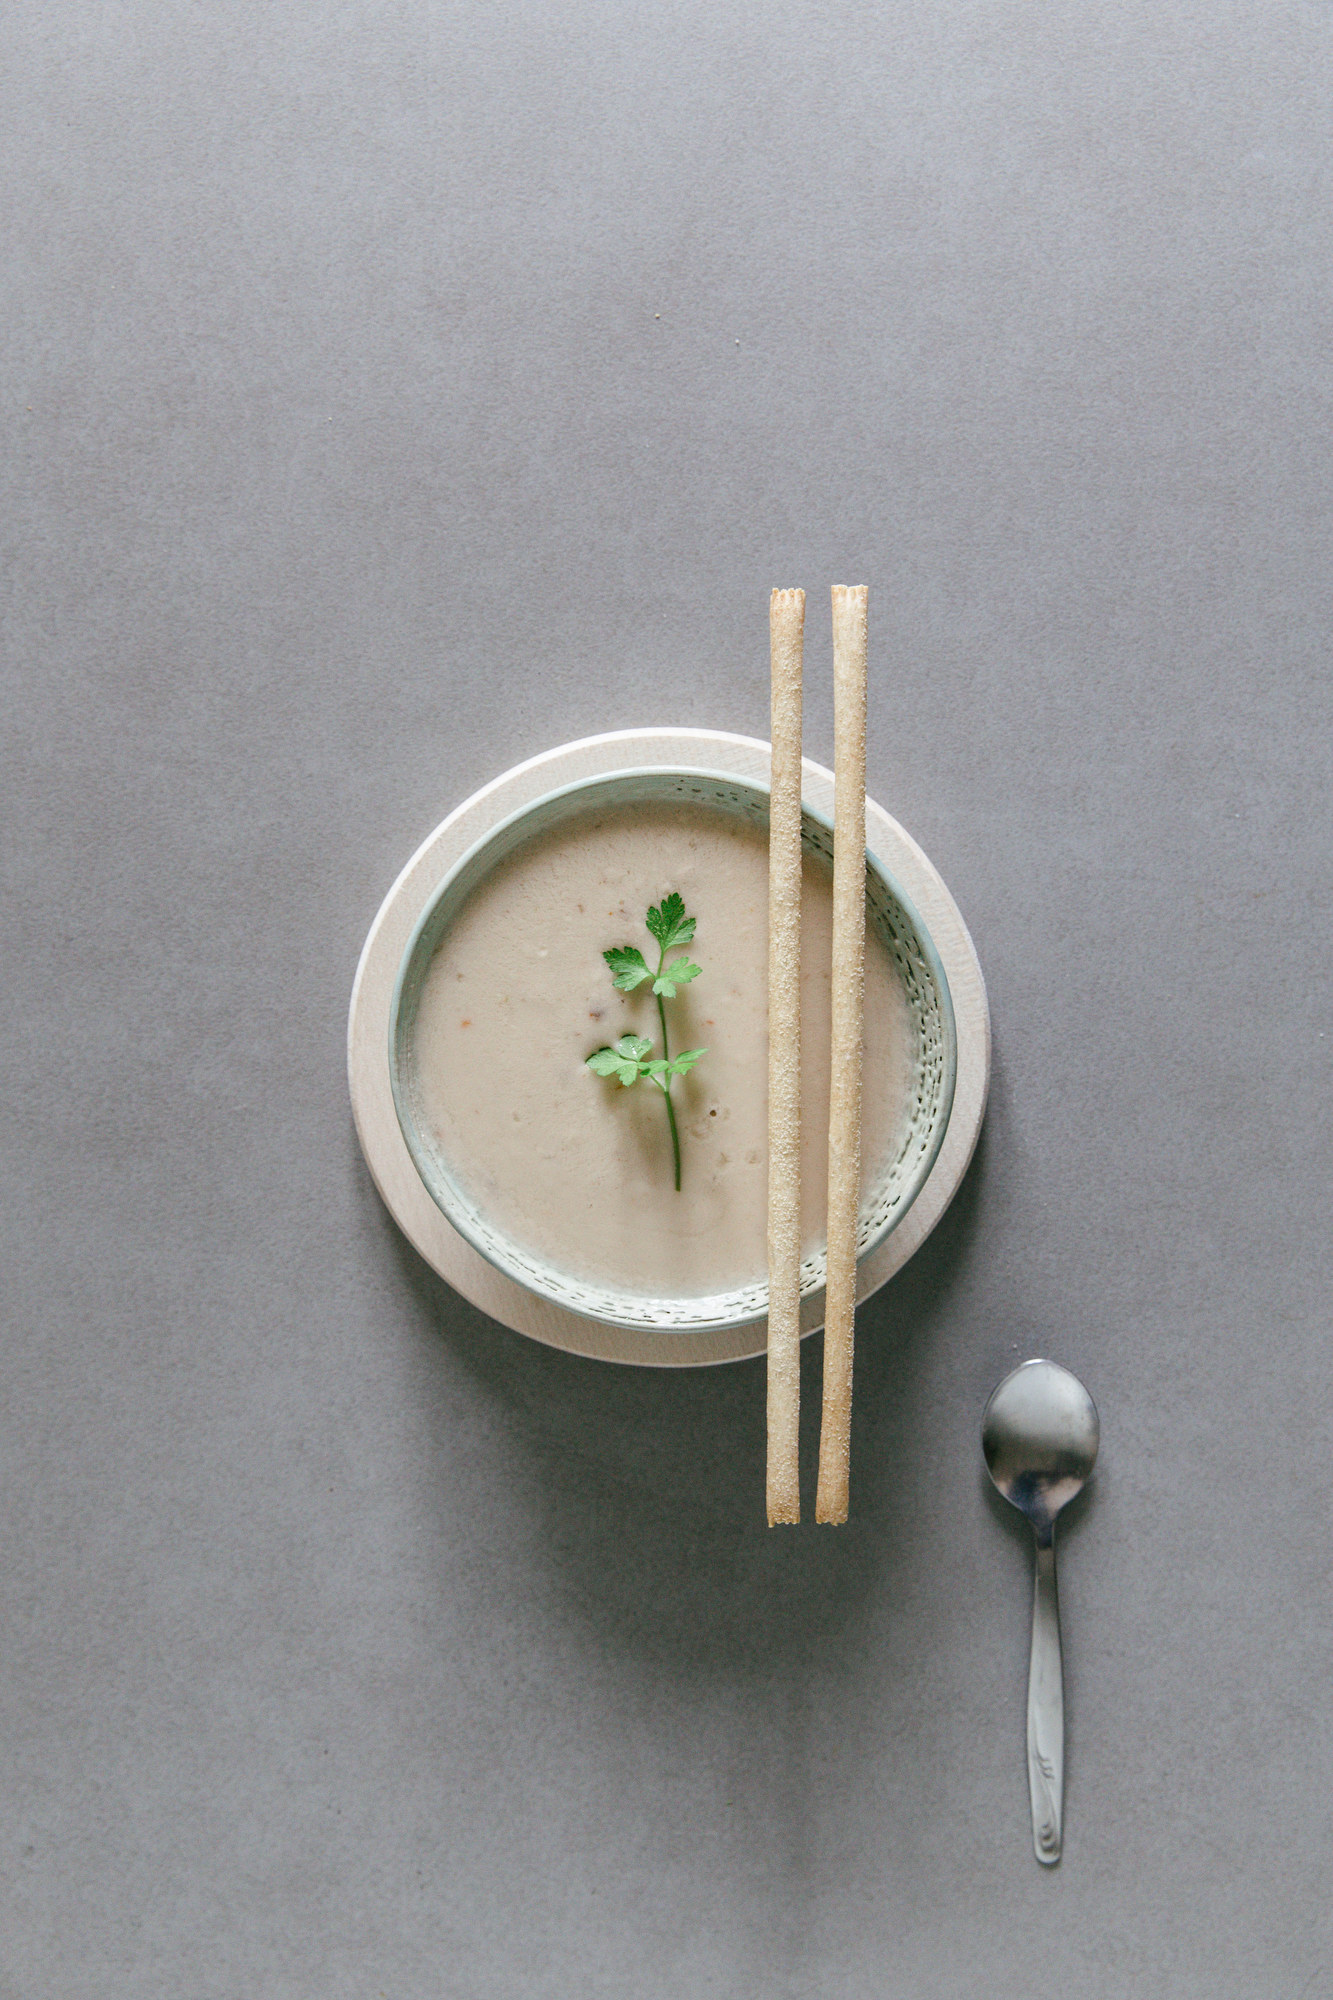 Creamy soup | photography & styling by Joske Simmelink